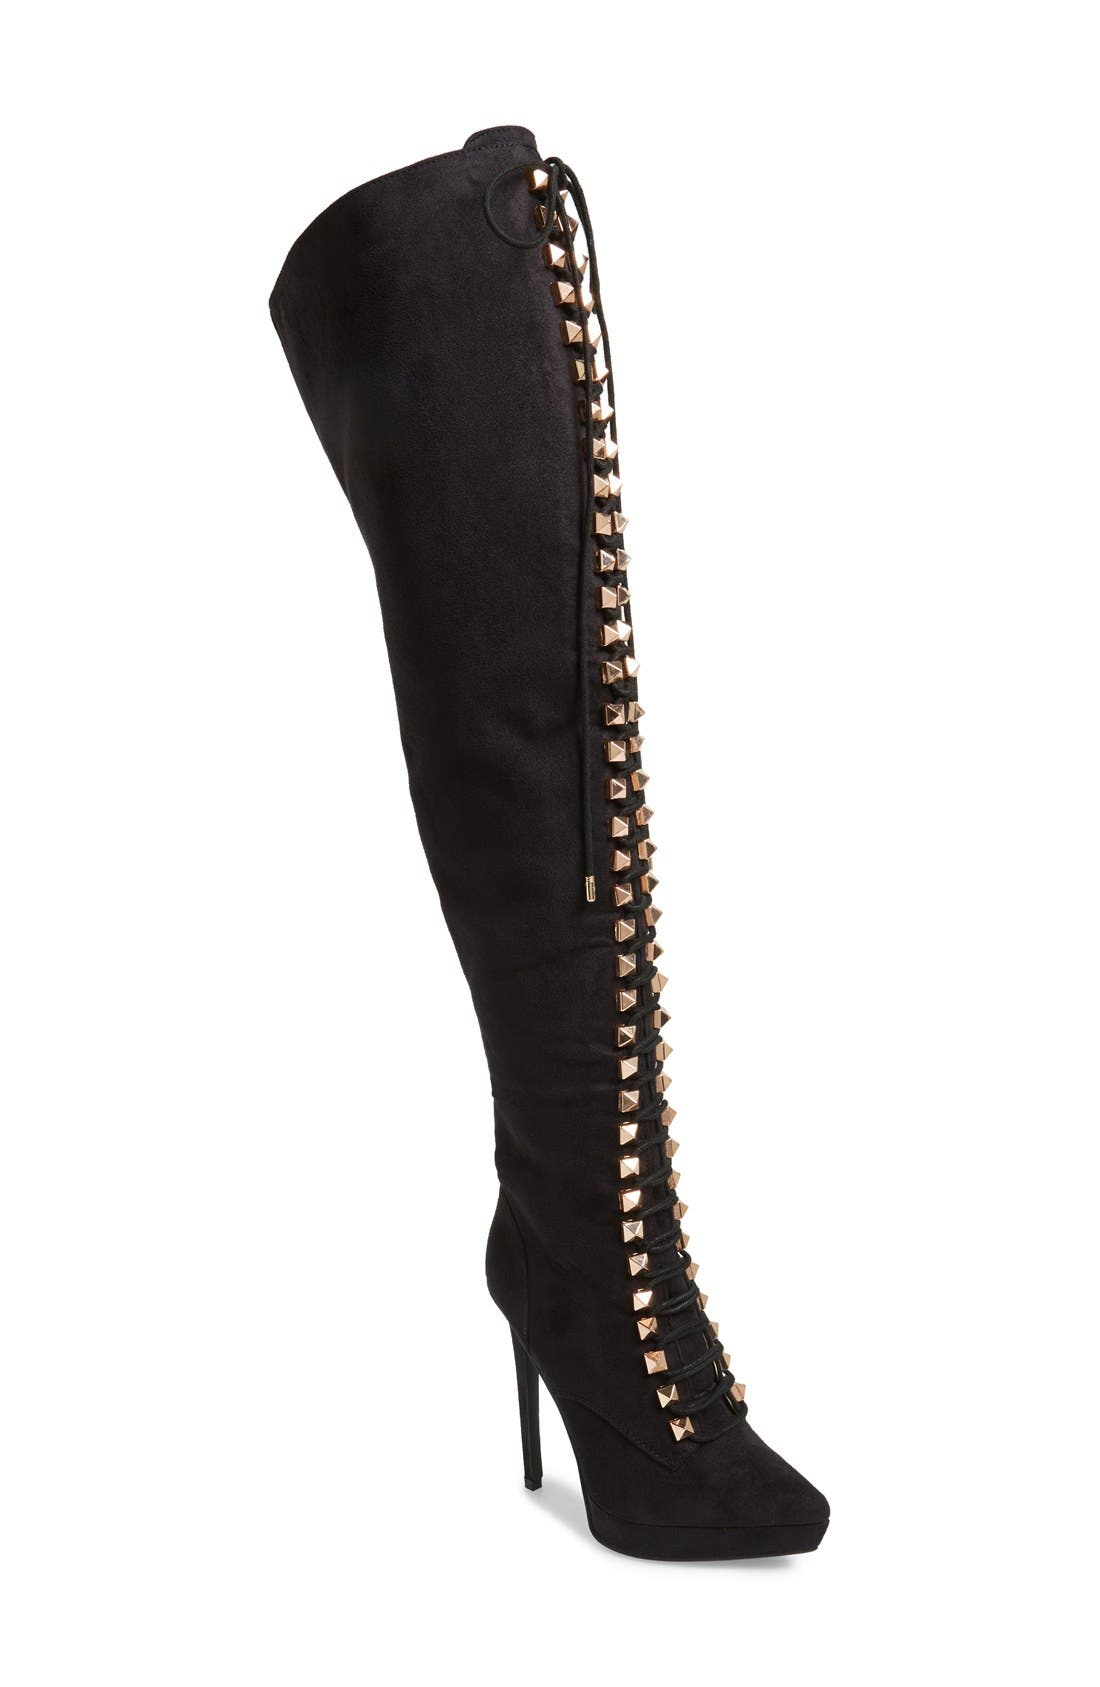 Main Image - ZiGi girl 'Payce' Over The Knee Boot (Women)